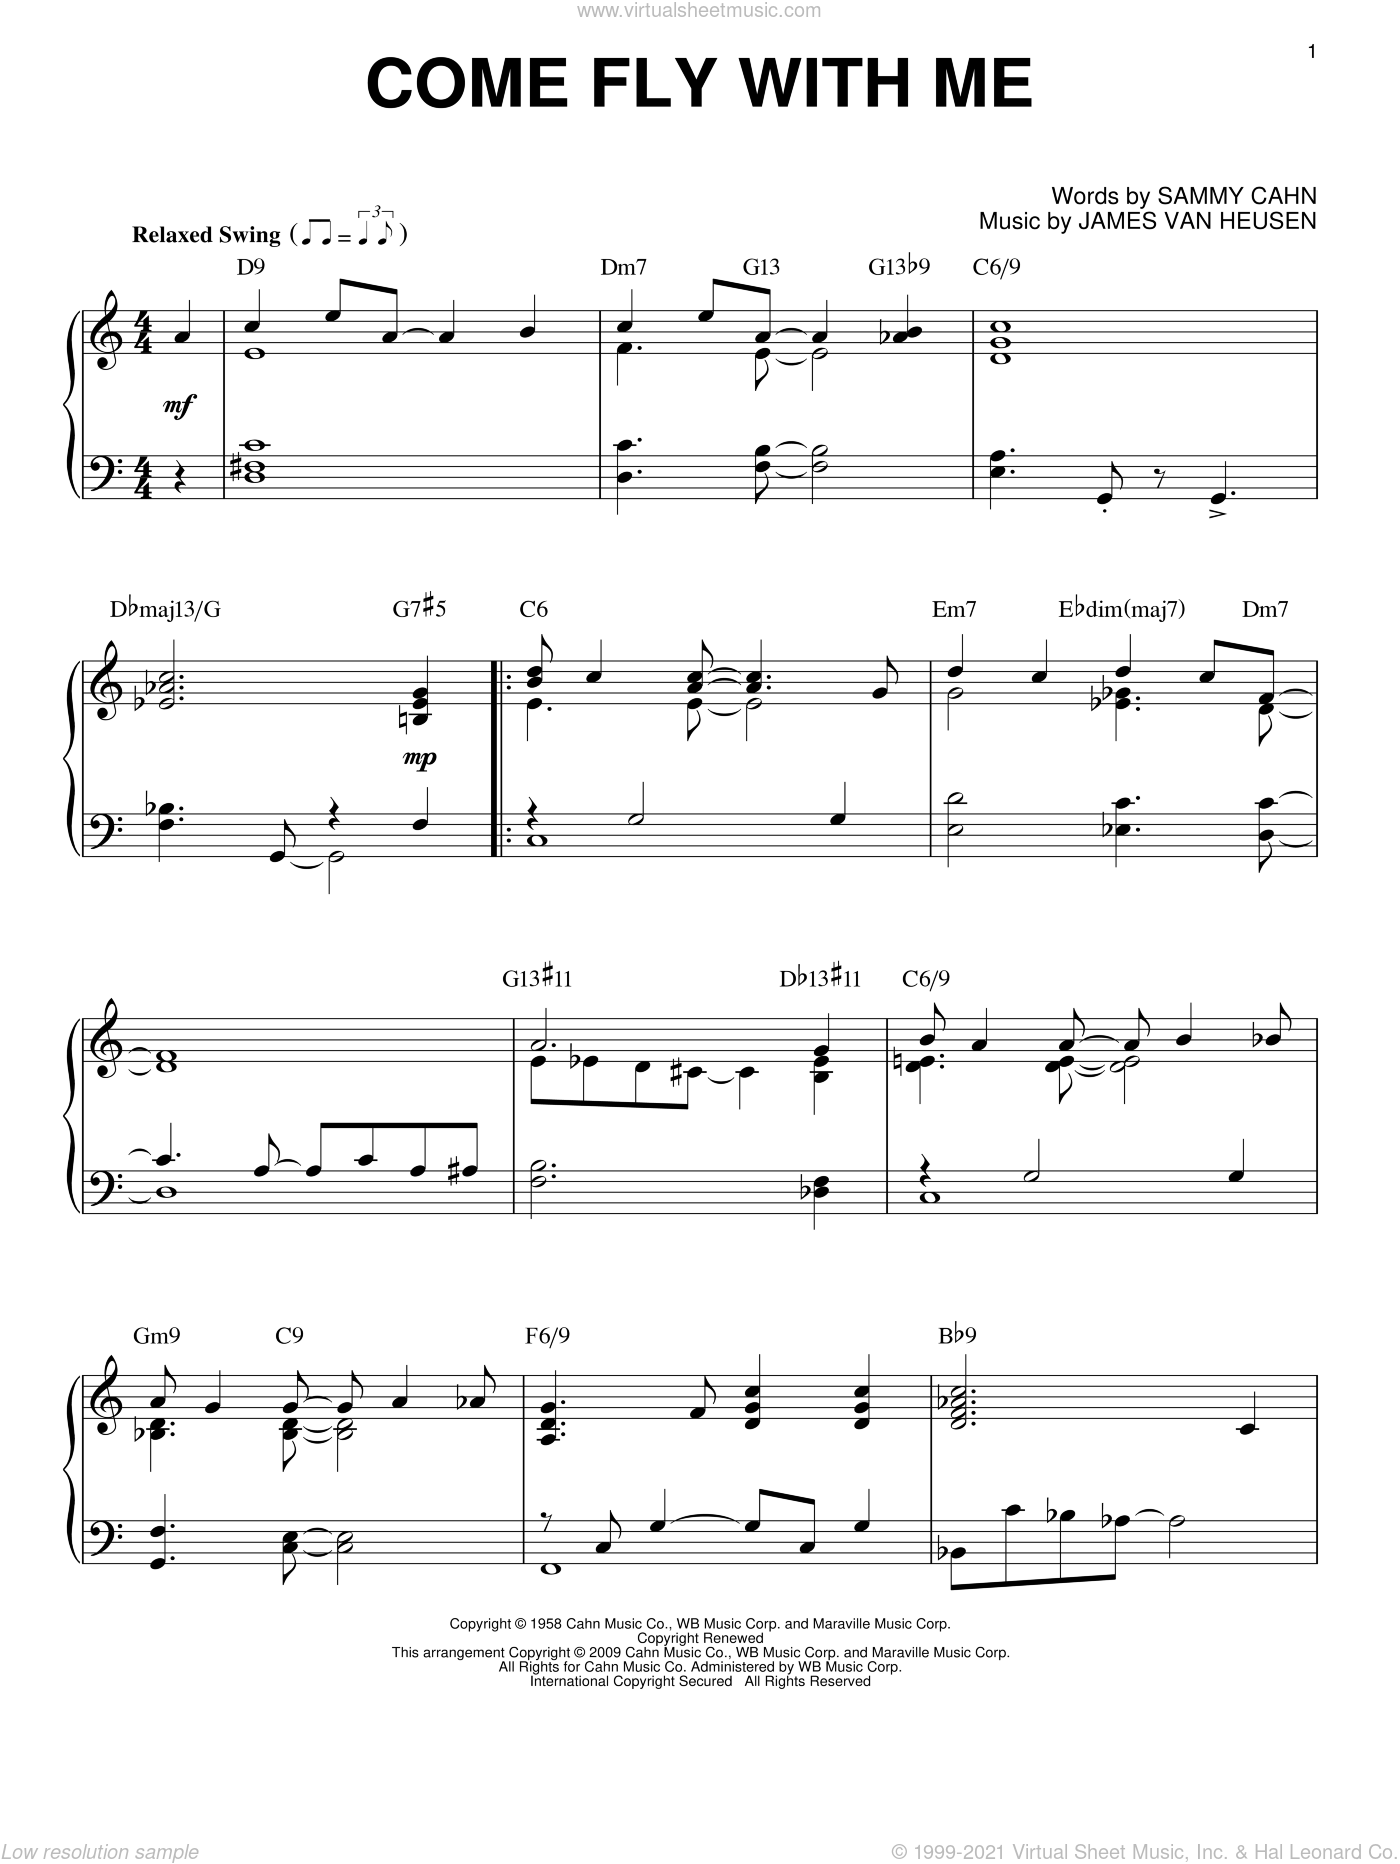 Come Fly With Me sheet music for piano solo by Frank Sinatra, Jimmy van Heusen and Sammy Cahn, intermediate piano. Score Image Preview.